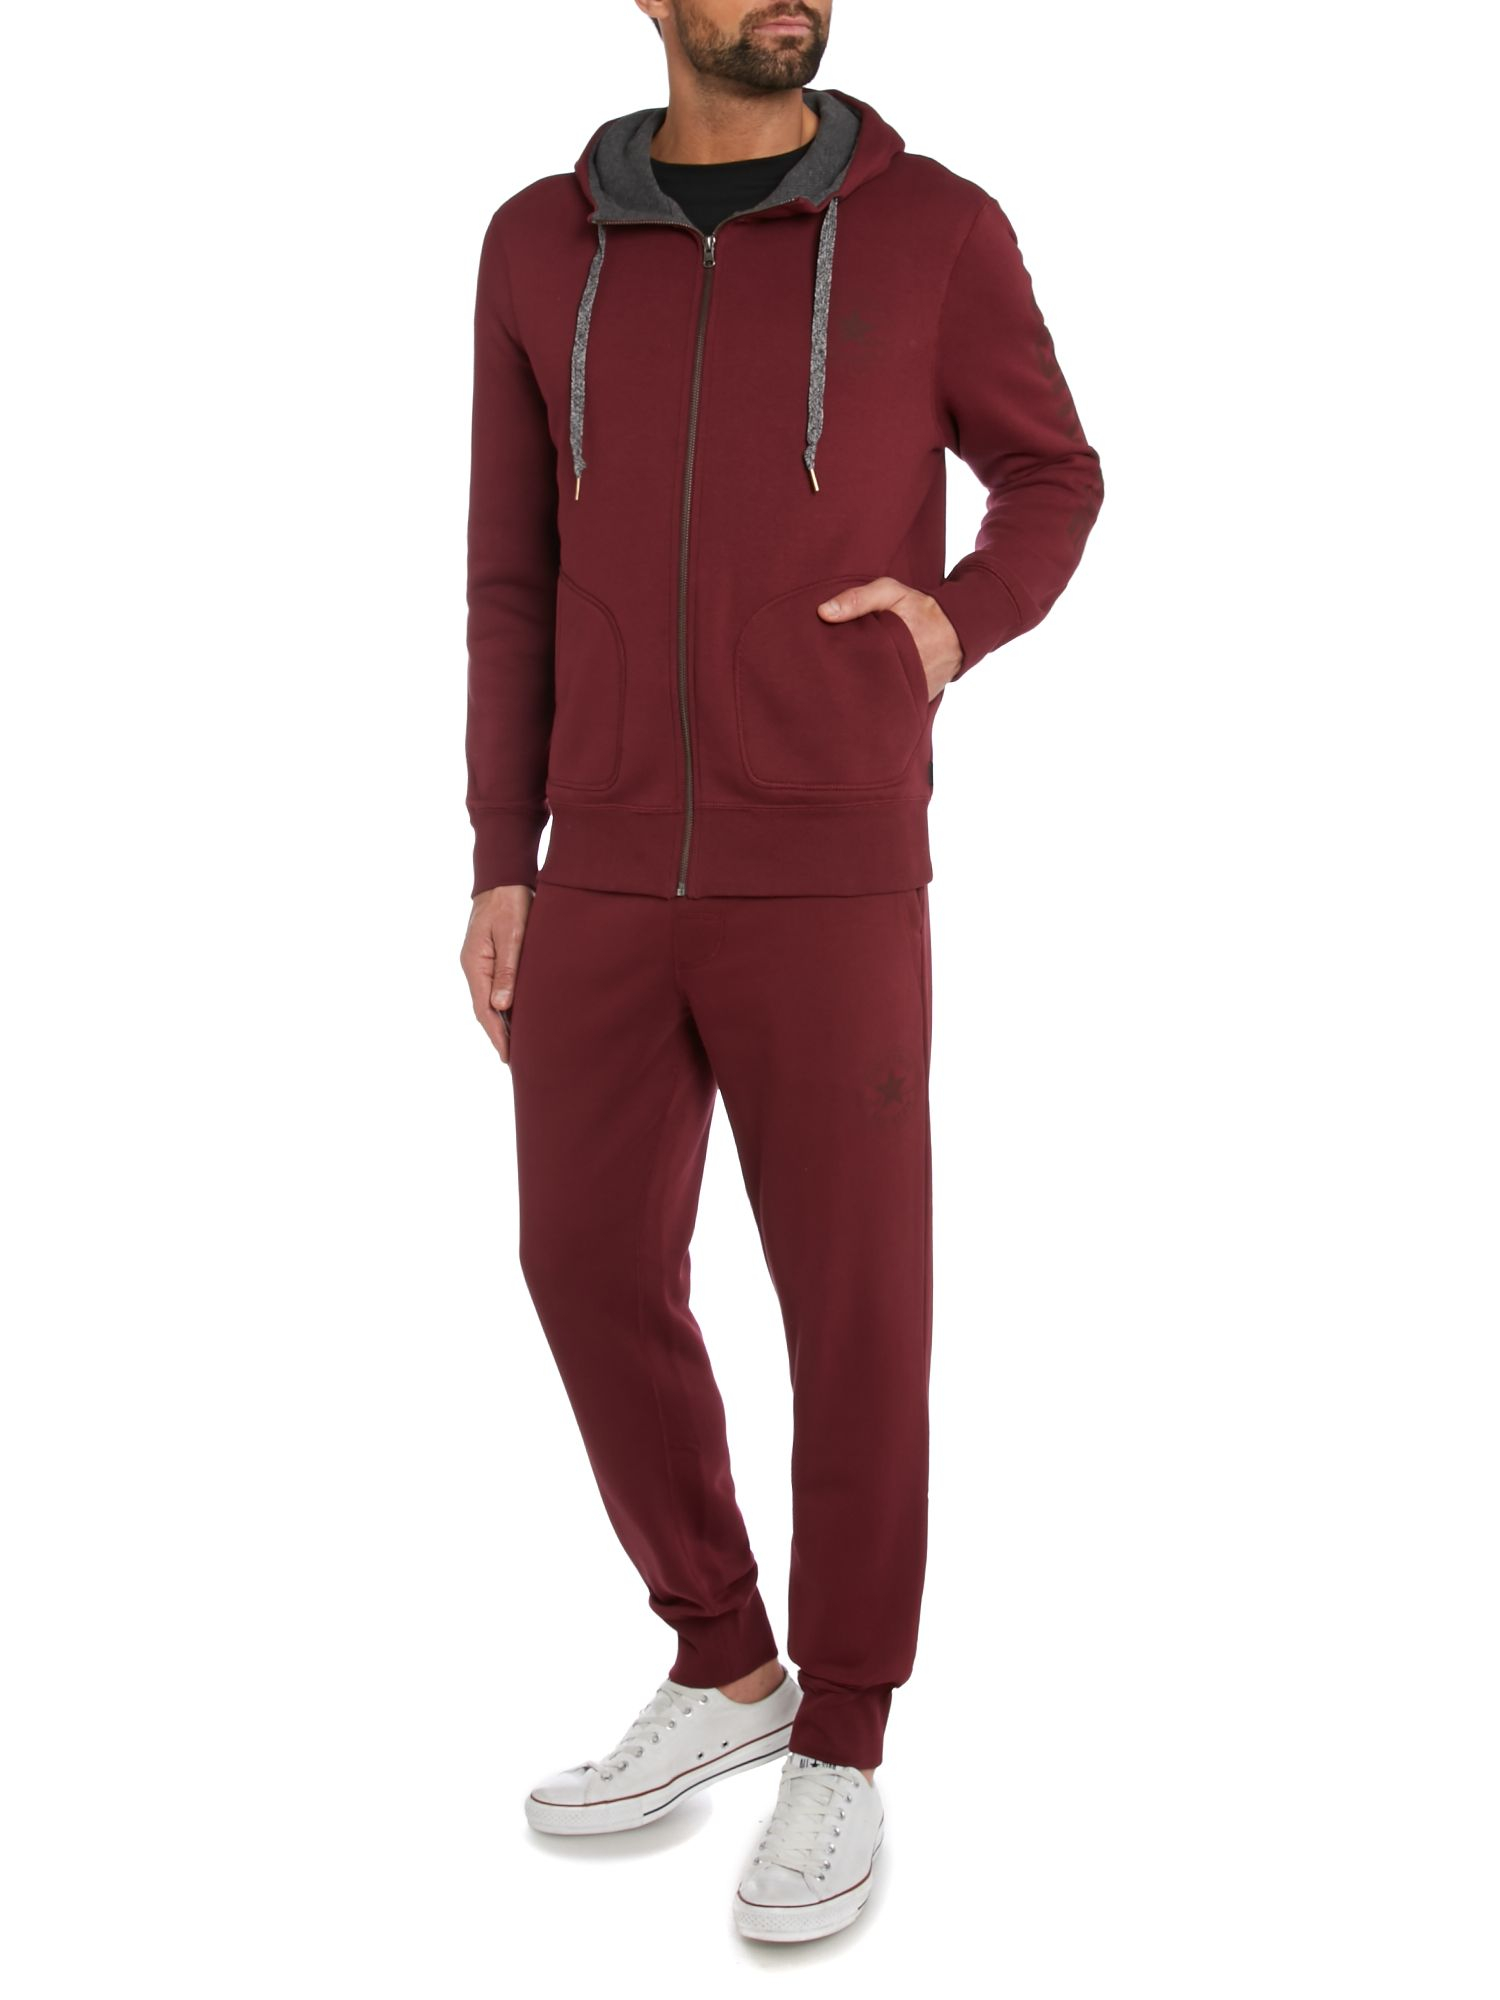 Converse Tracksuit Bottoms in Burgundy (Purple) for Men